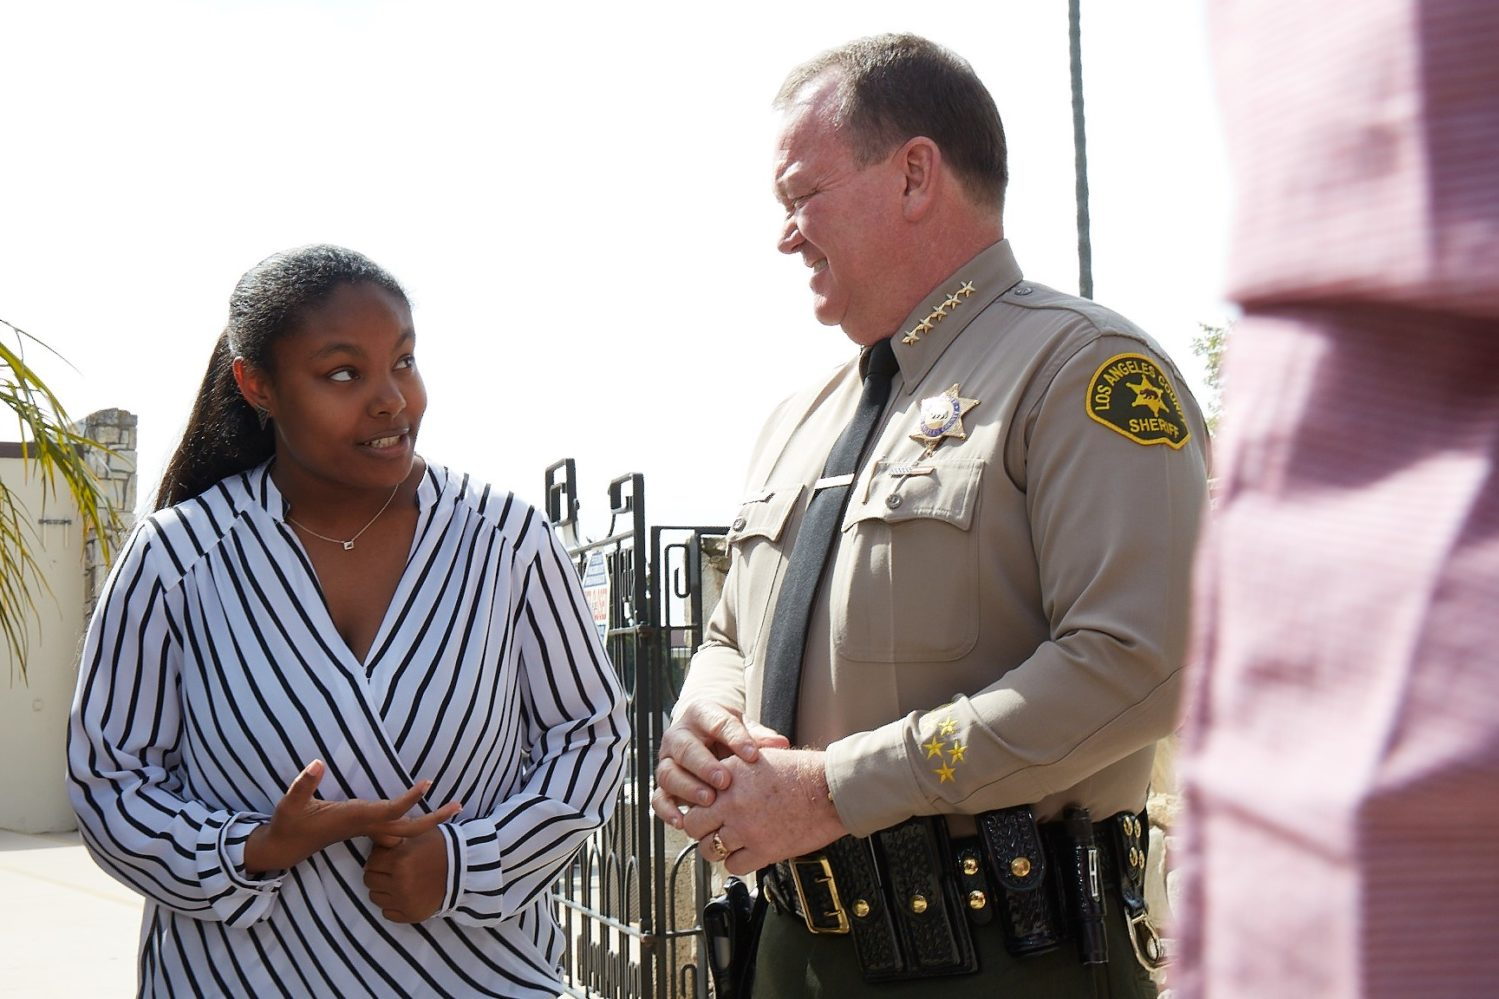 Criminal Justice student speaking with LA County Sherrif